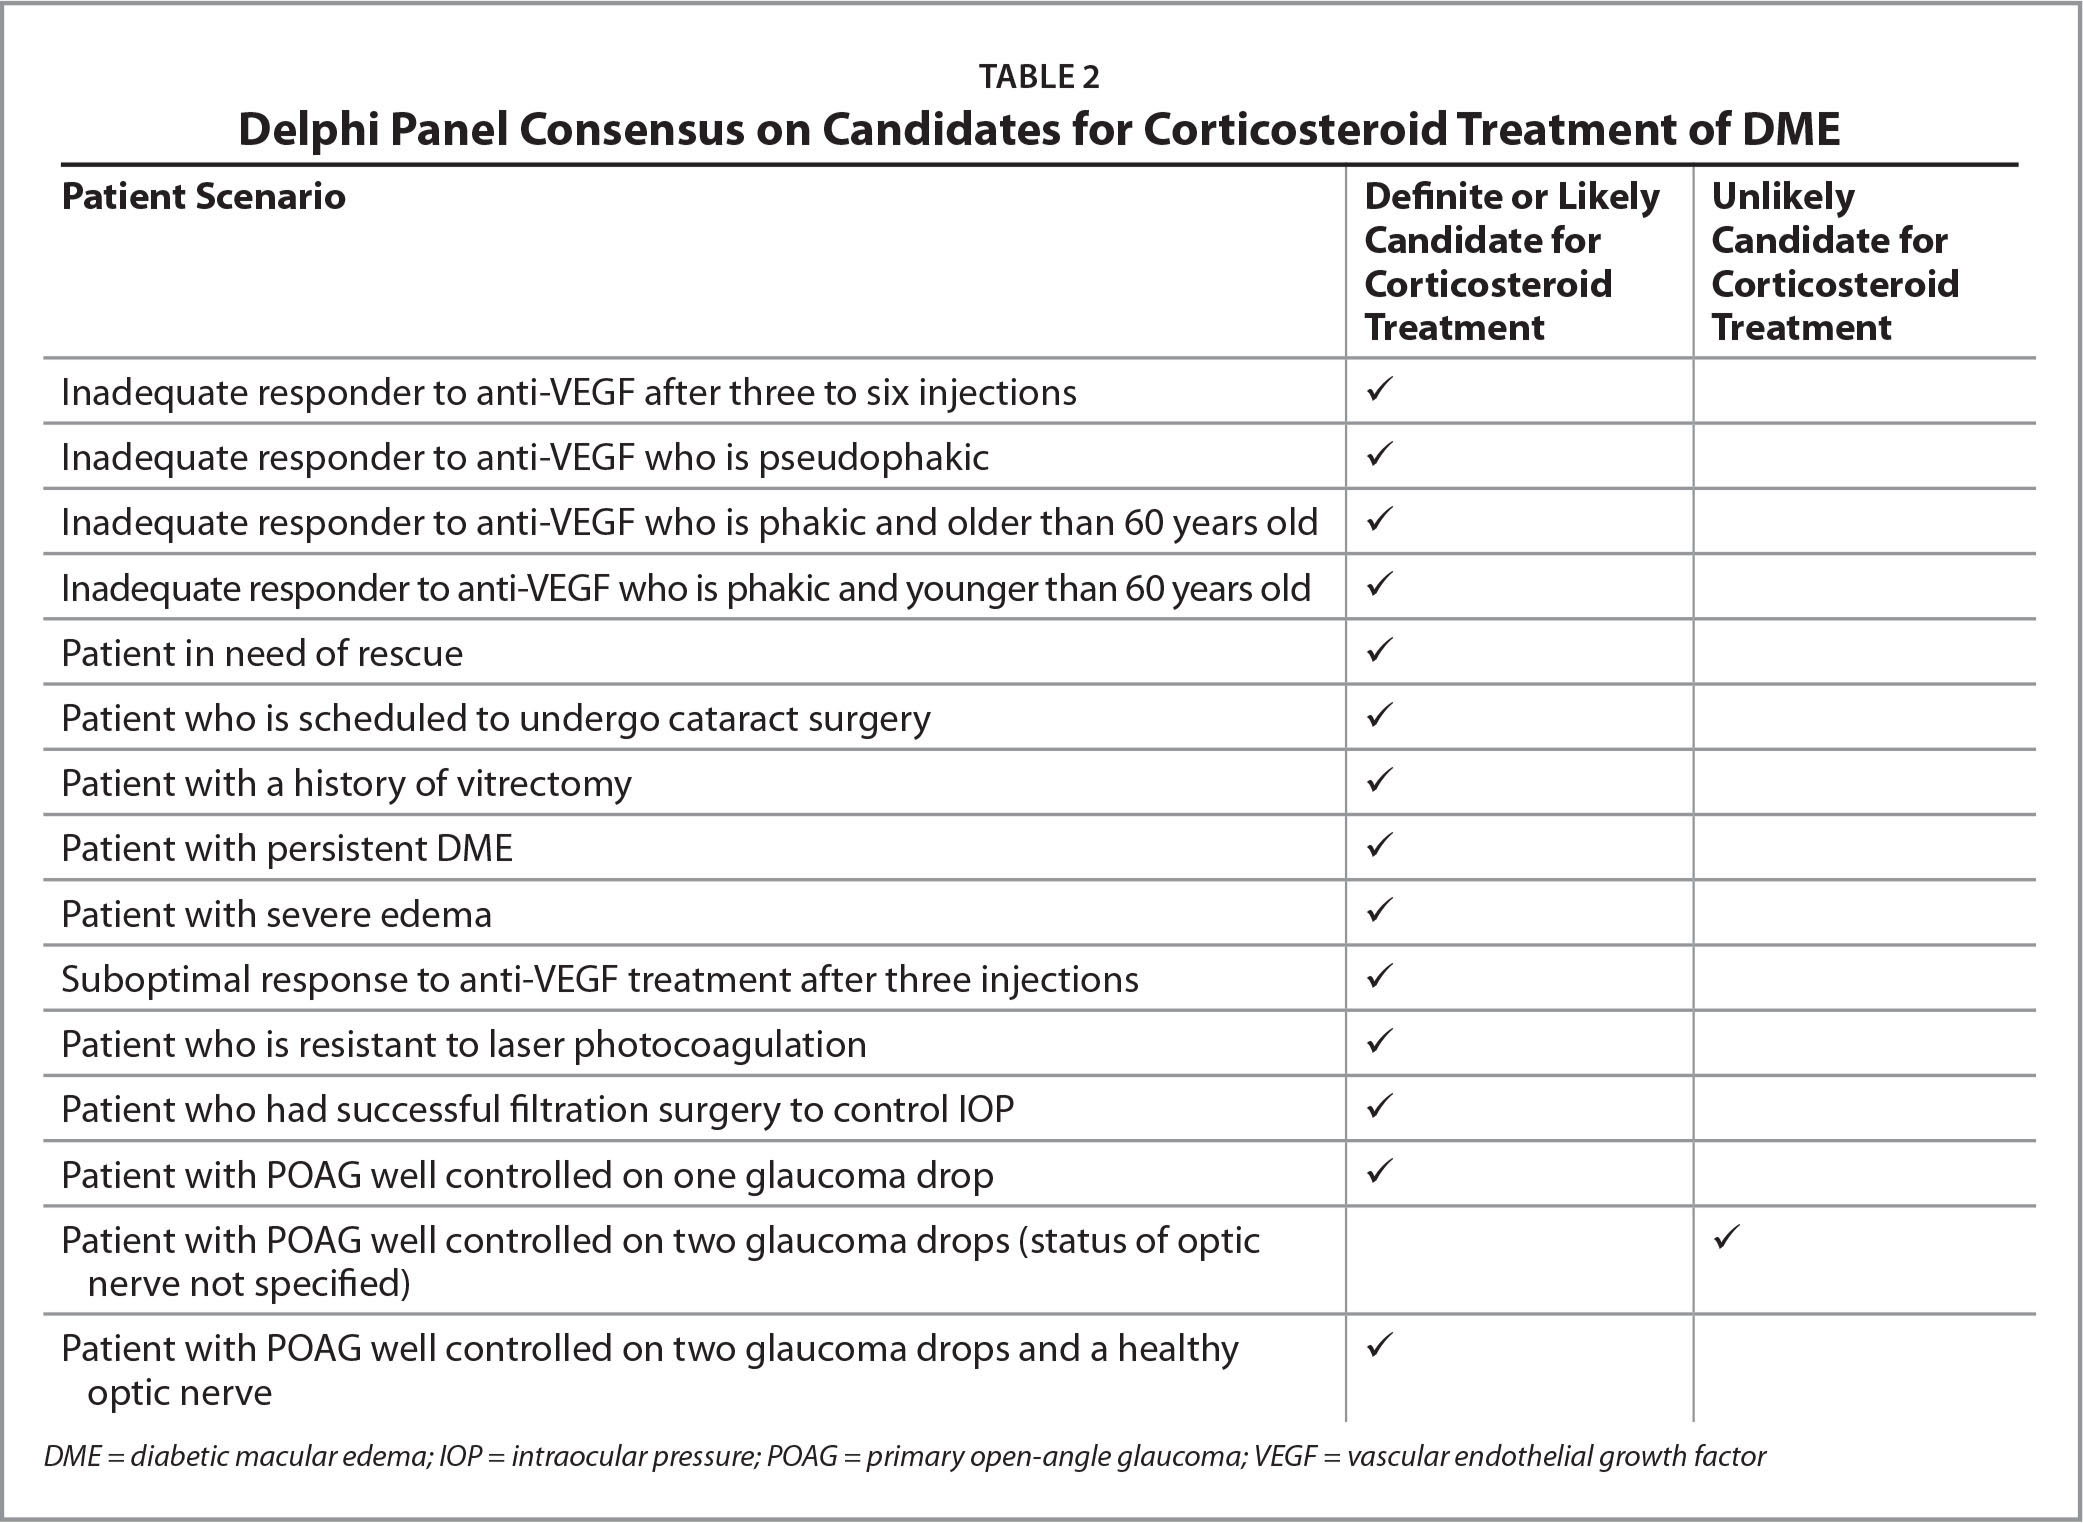 �A;Delphi Panel Consensus on Candidates for Corticosteroid Treatment of DME